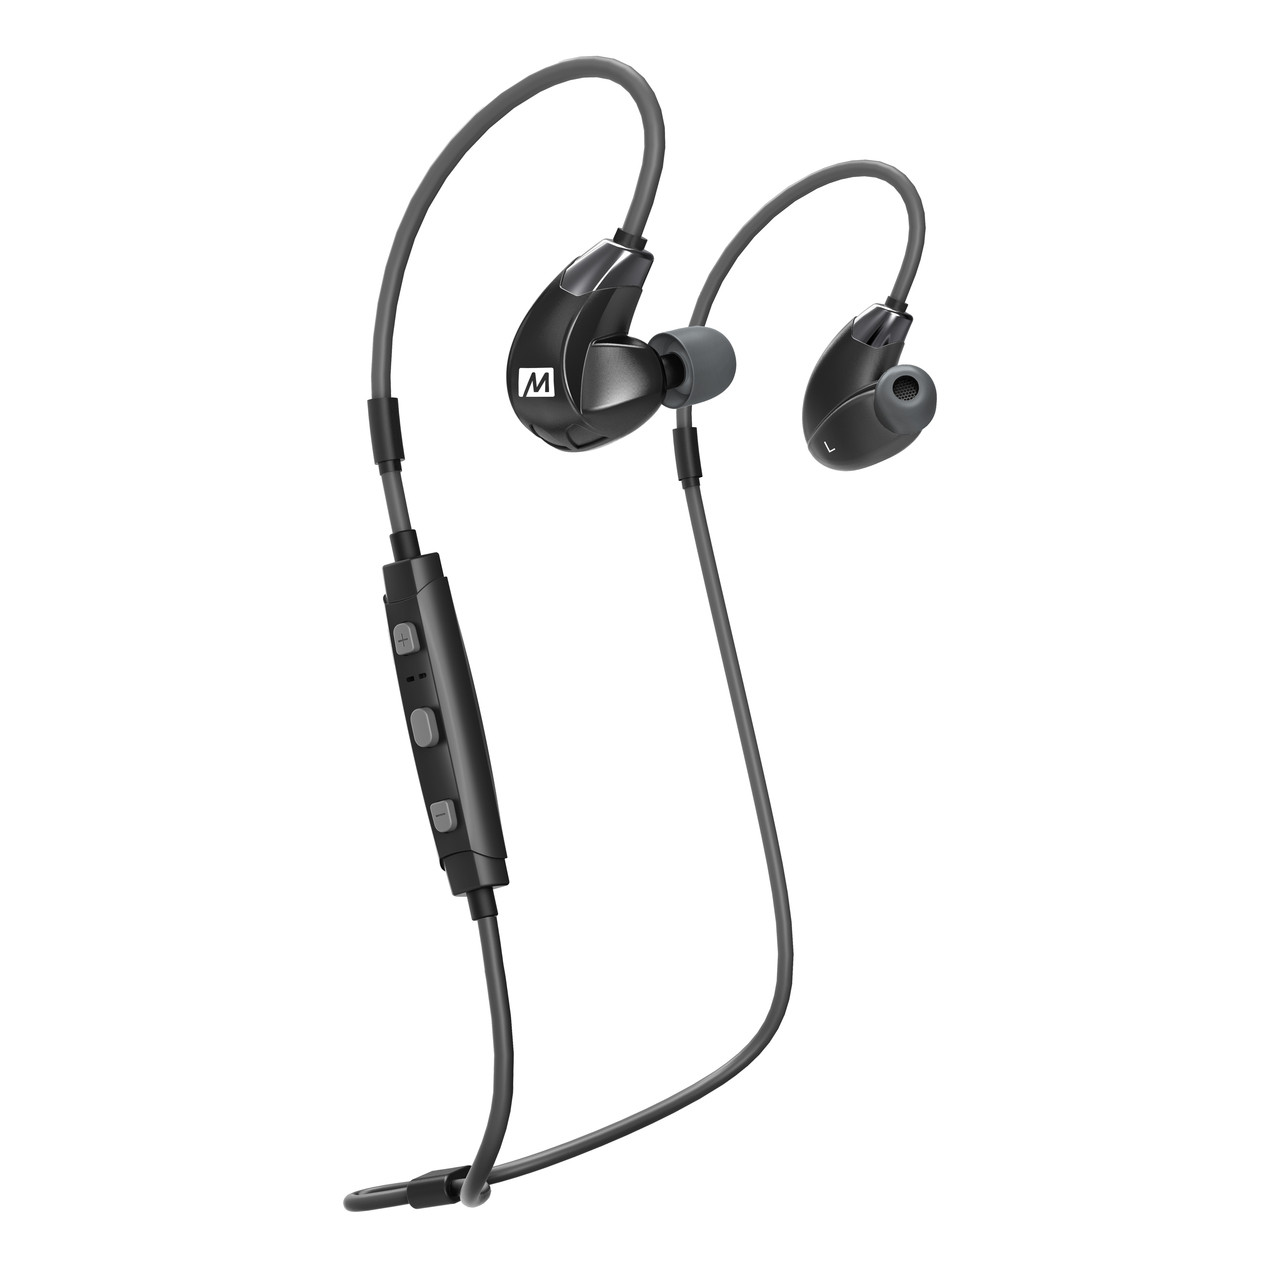 X7 Plus Stereo Bluetooth Wireless Sports In Ear Hd Headphones With Wiring Aac Plug Image 1